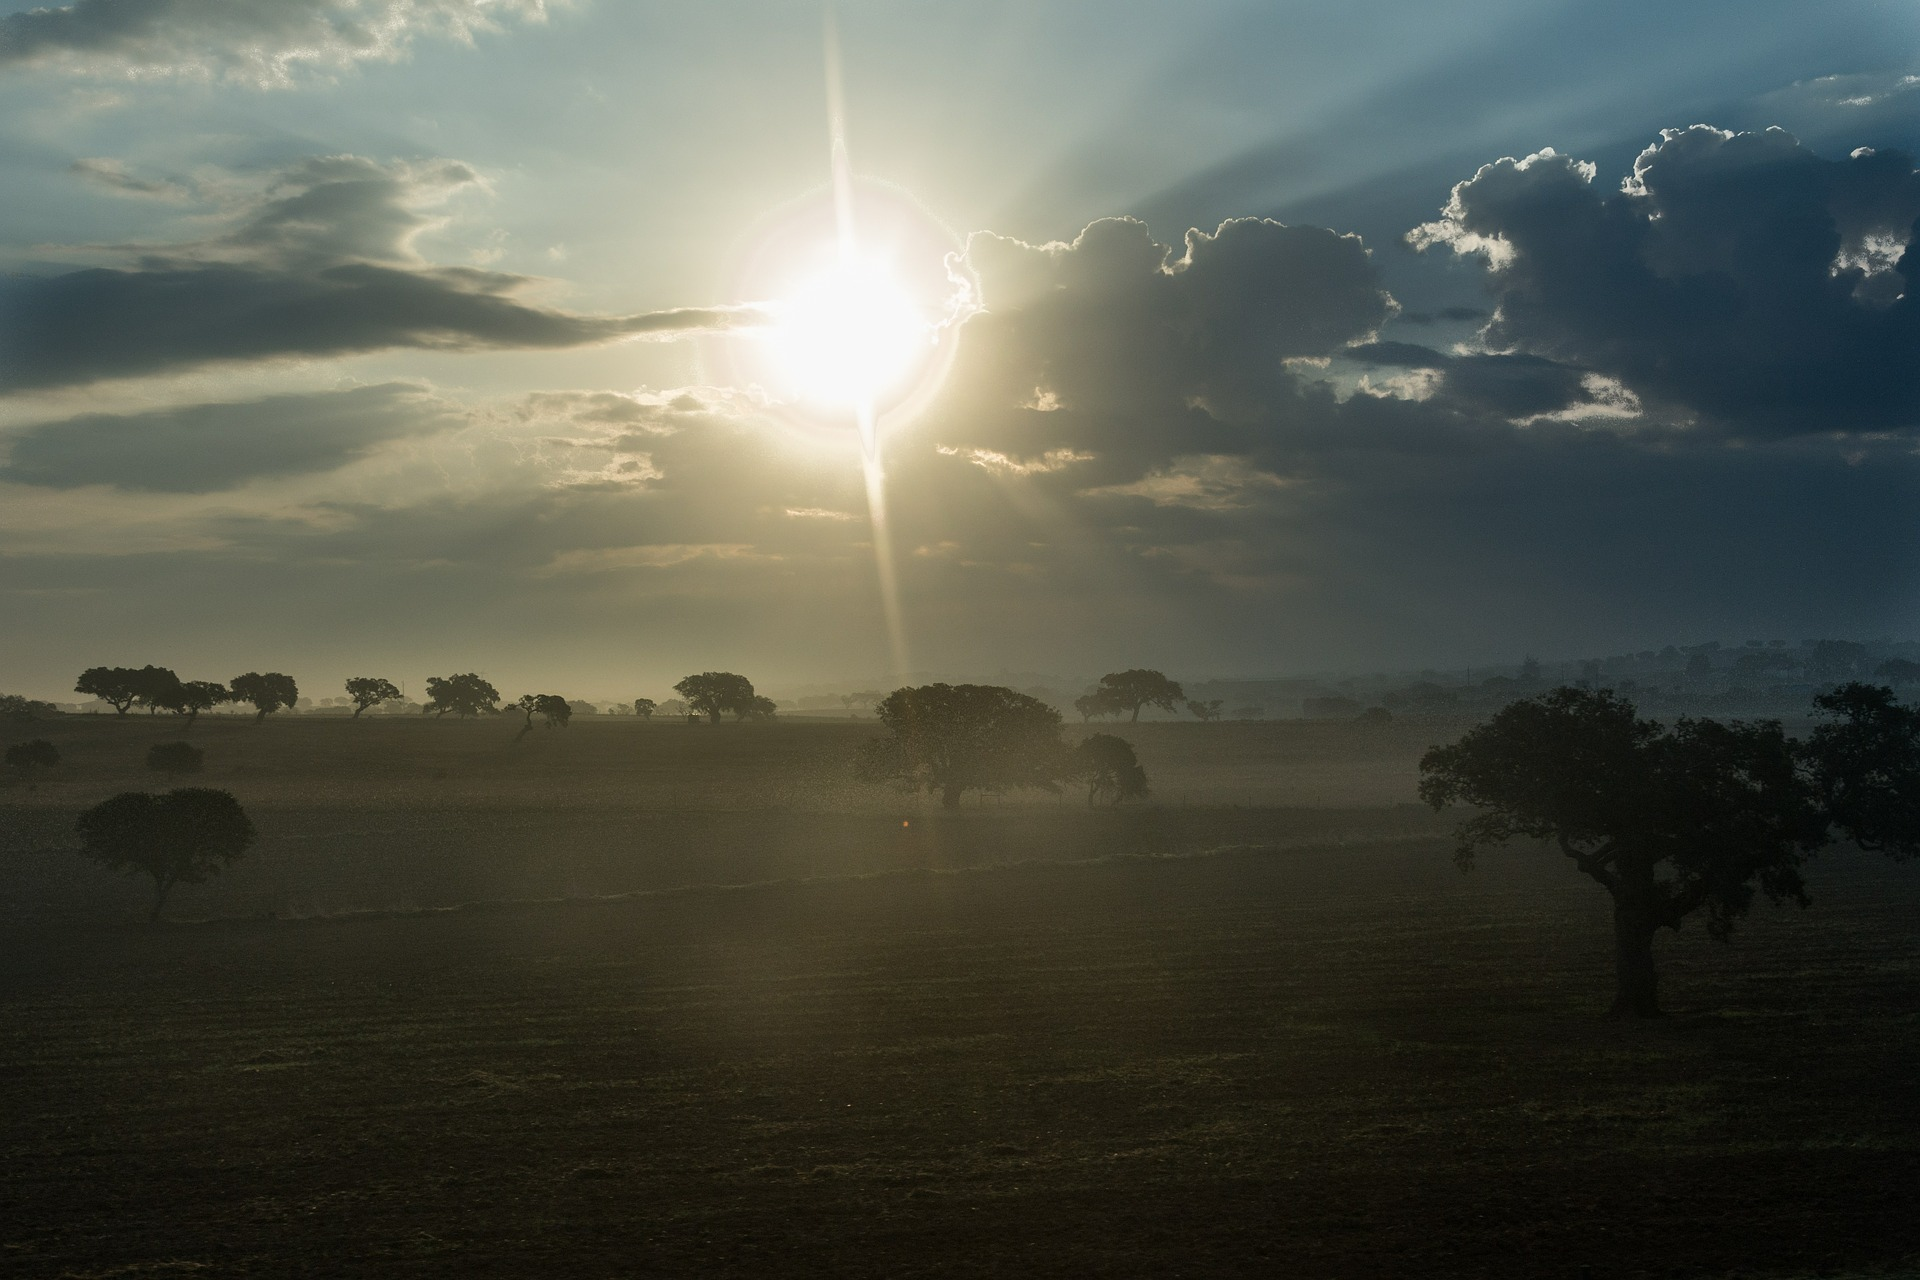 Morning in the field photo